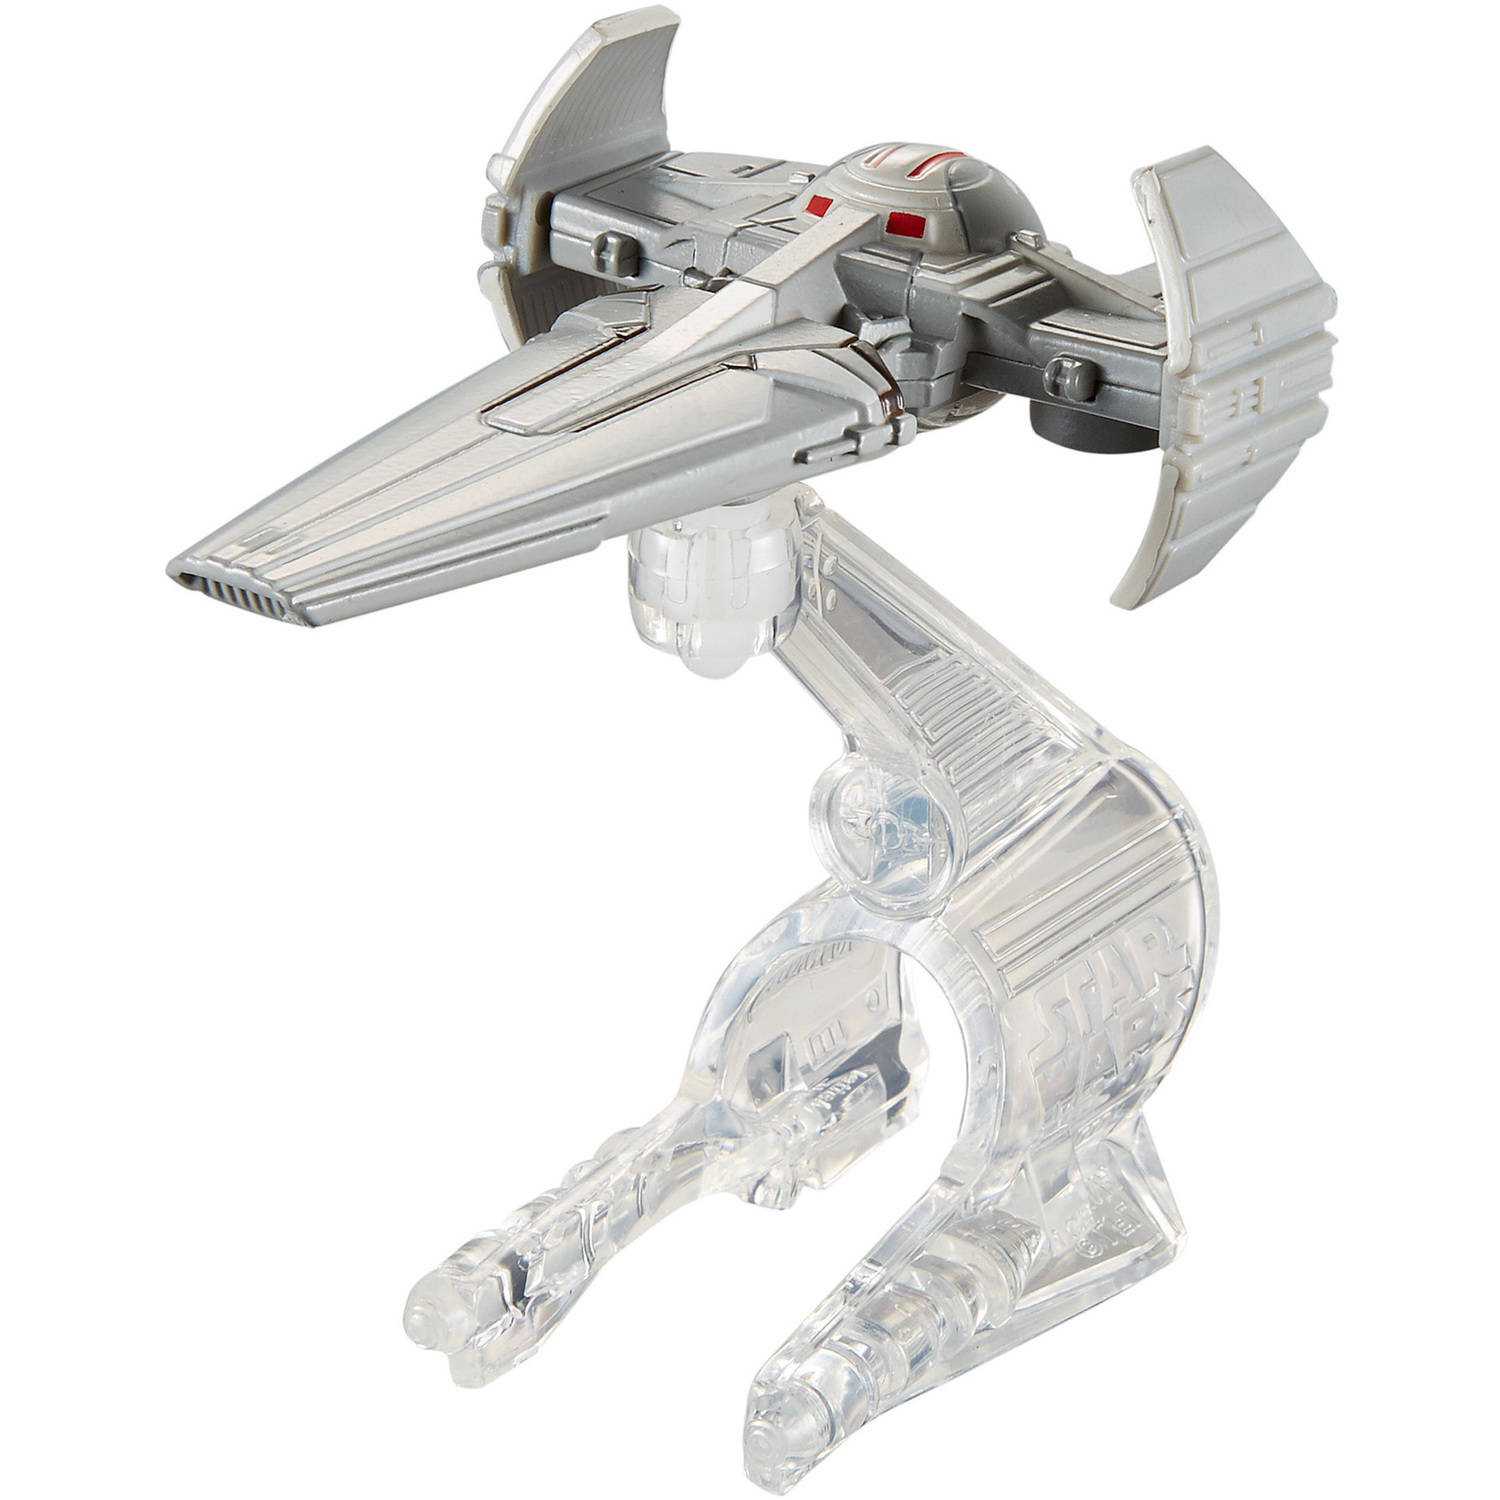 Hot Wheels Star Wars Starship Sith Infiltrator